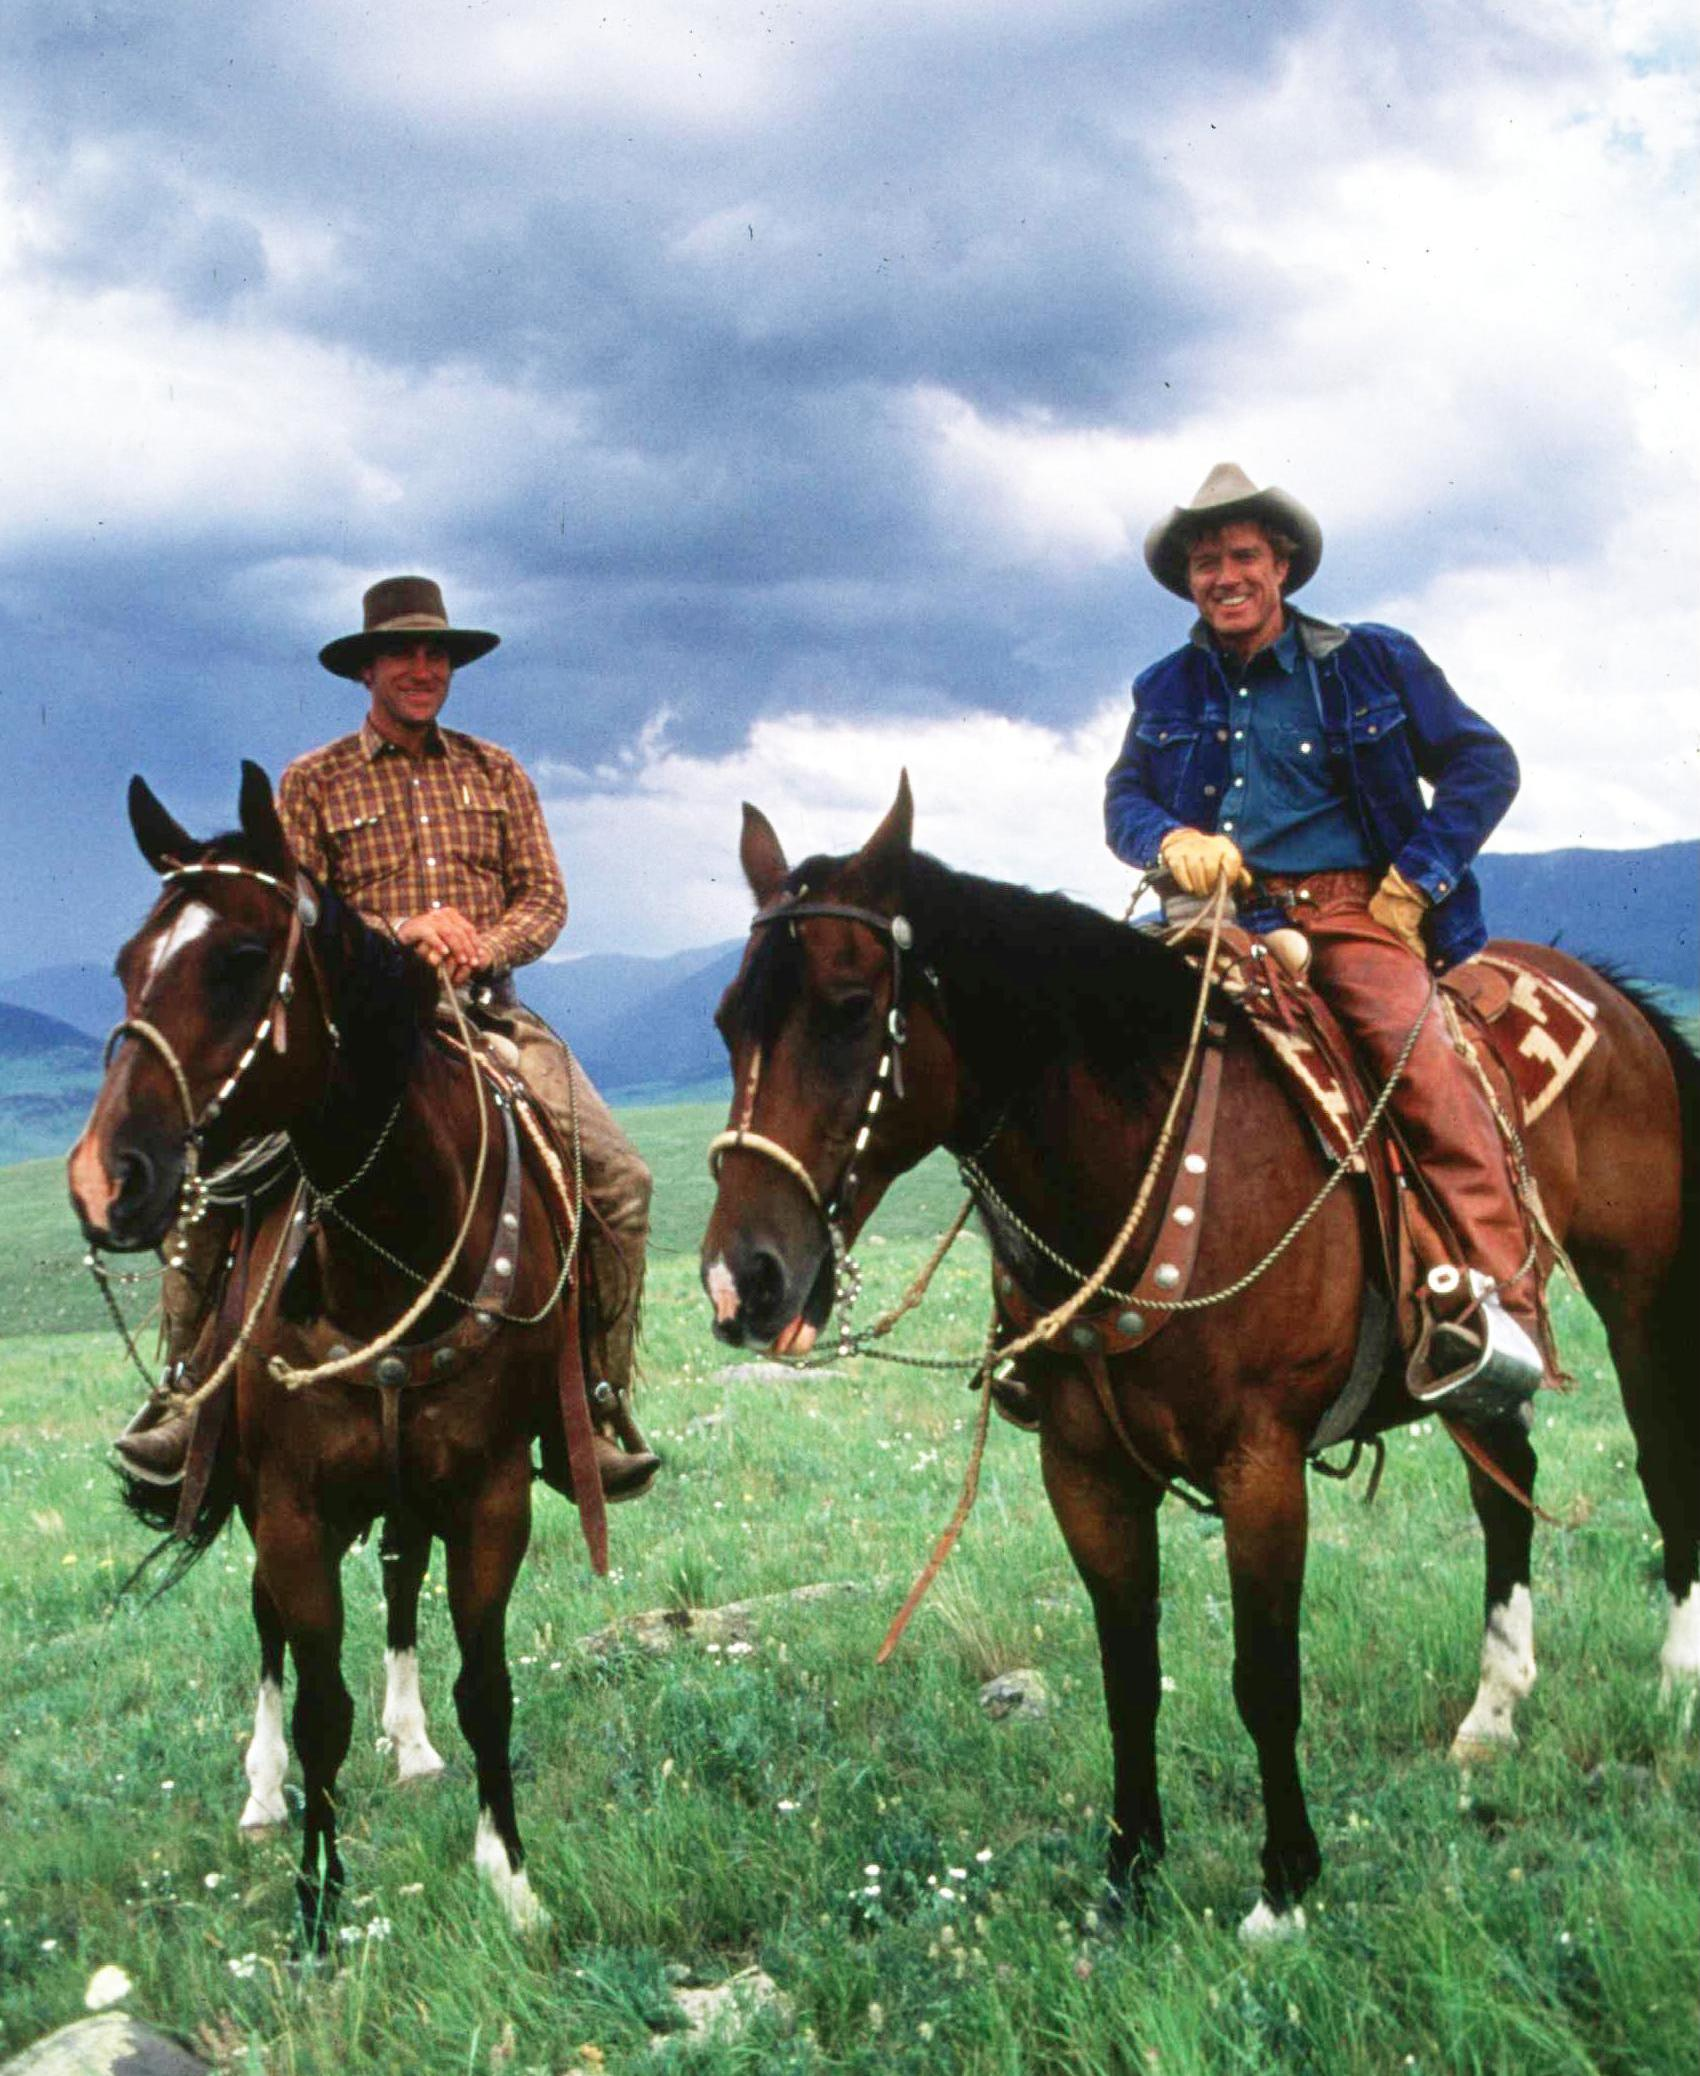 Redford (right) directed and starred in The Horse Whisperer in 1998. He's pictured above with real-life horse whisperer Buck Brannaman.